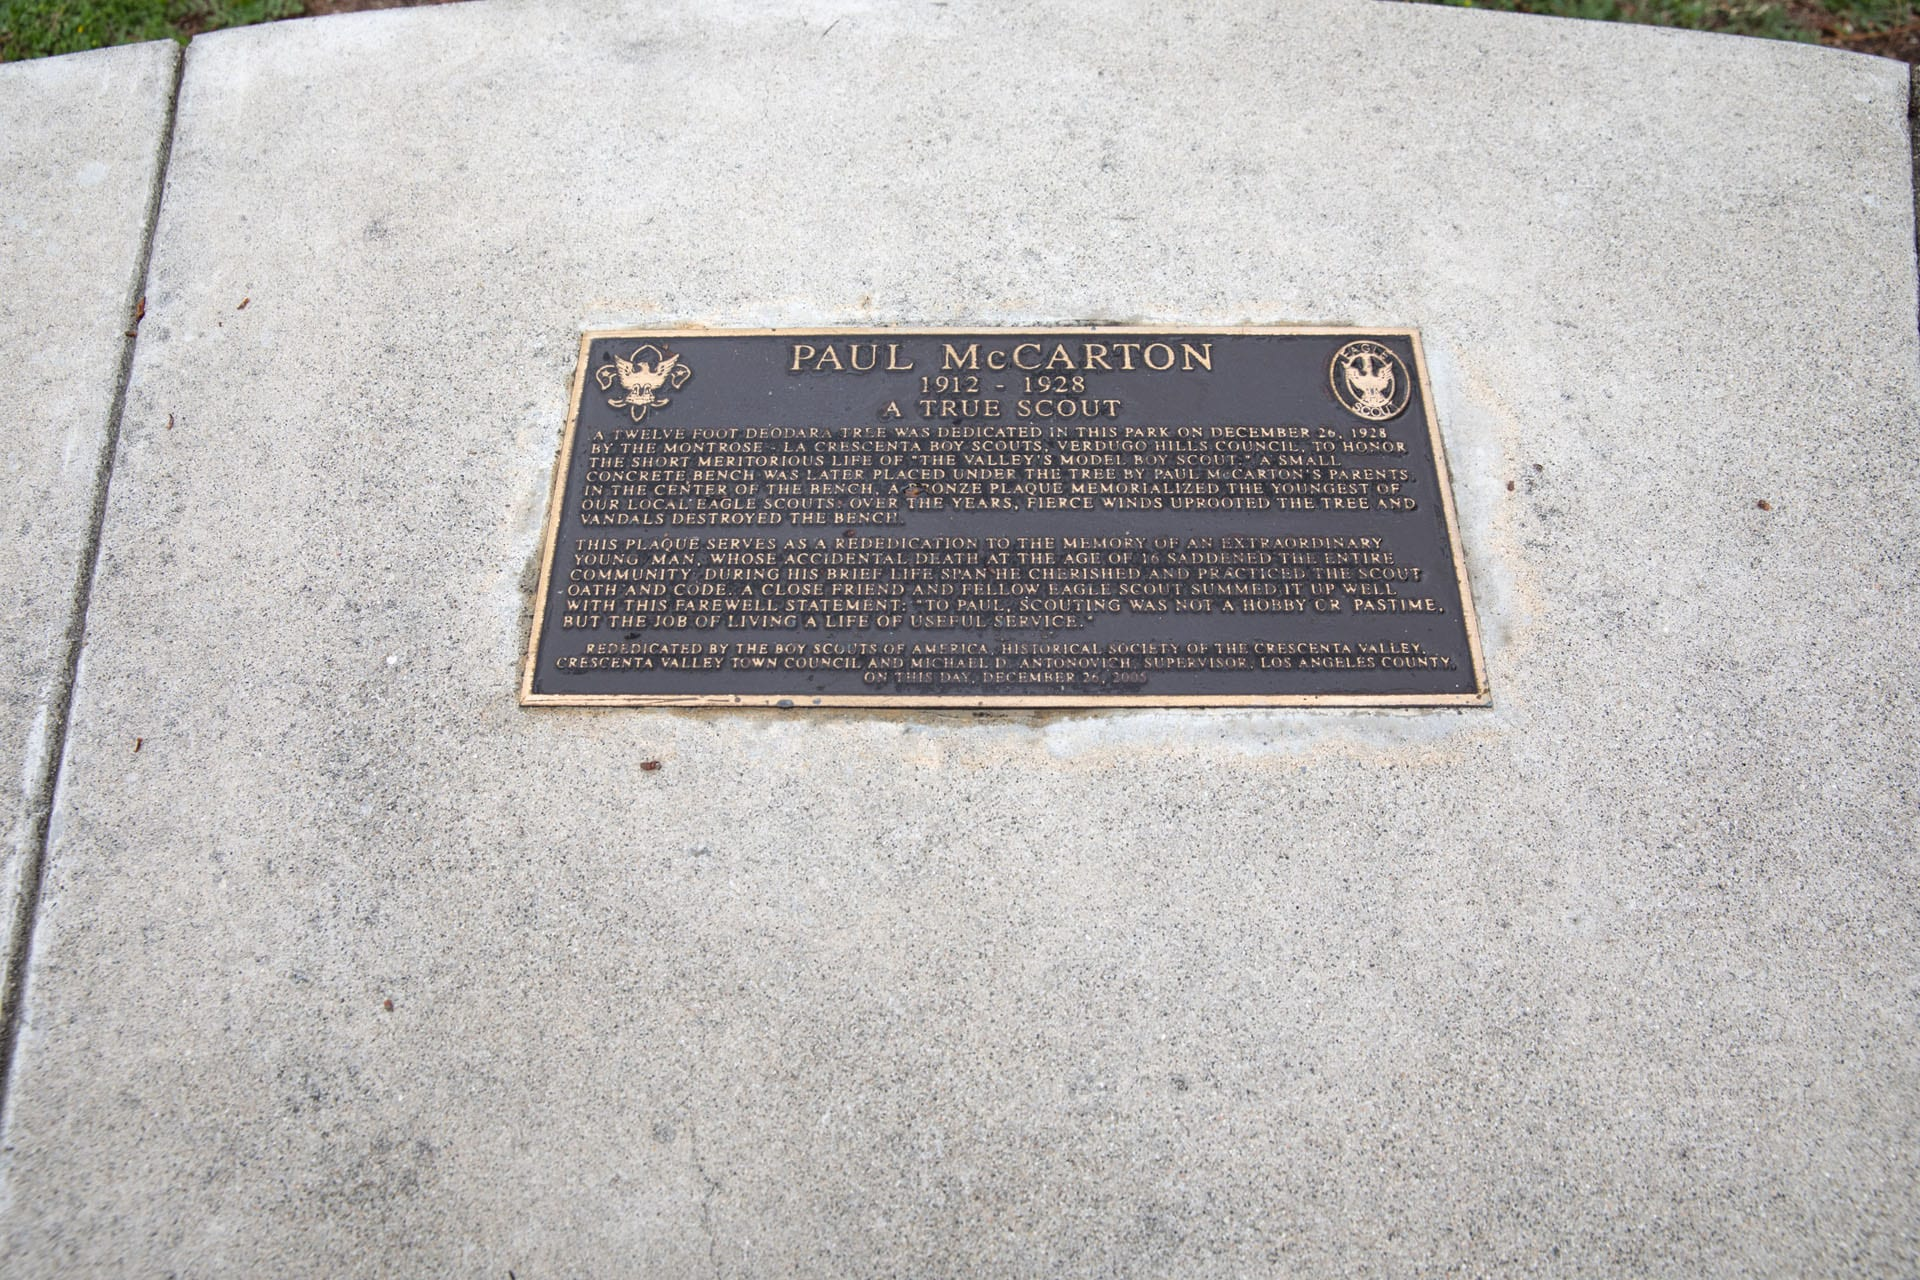 A plaque on a monument